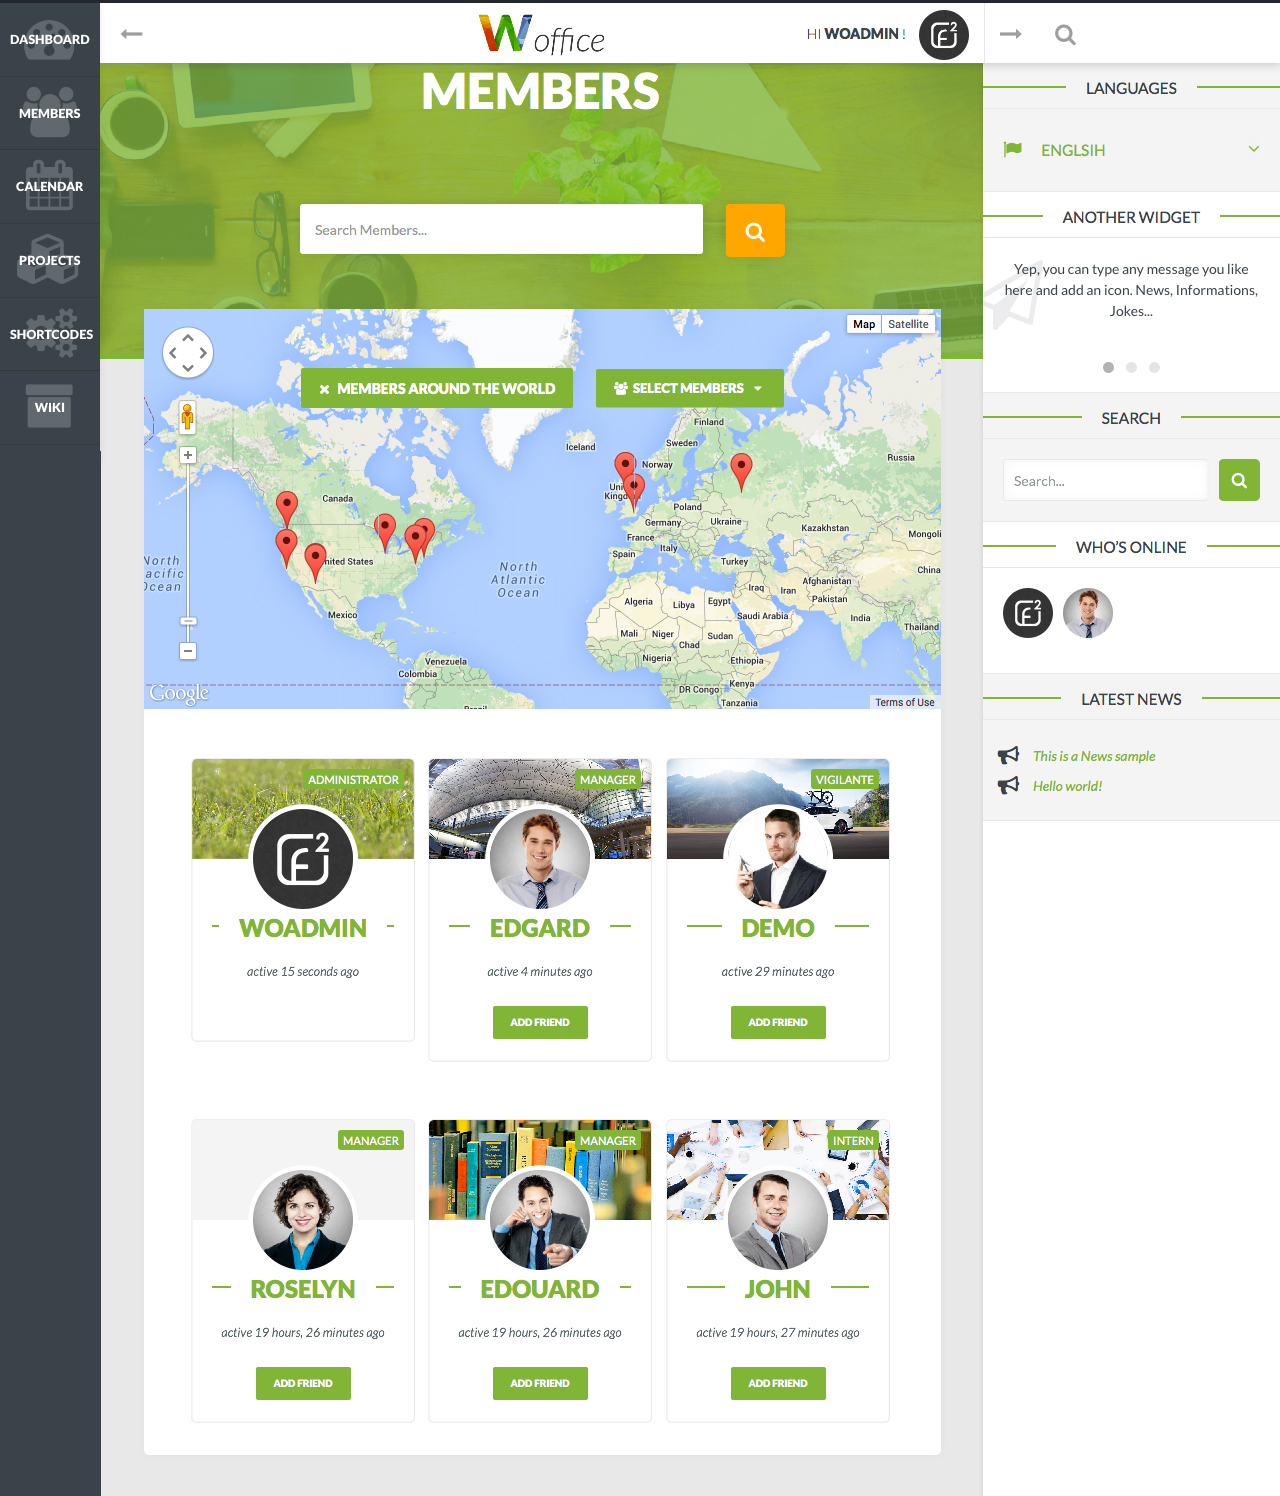 Woffice intranet extranet wordpress theme by alkaweb for Wordpress design